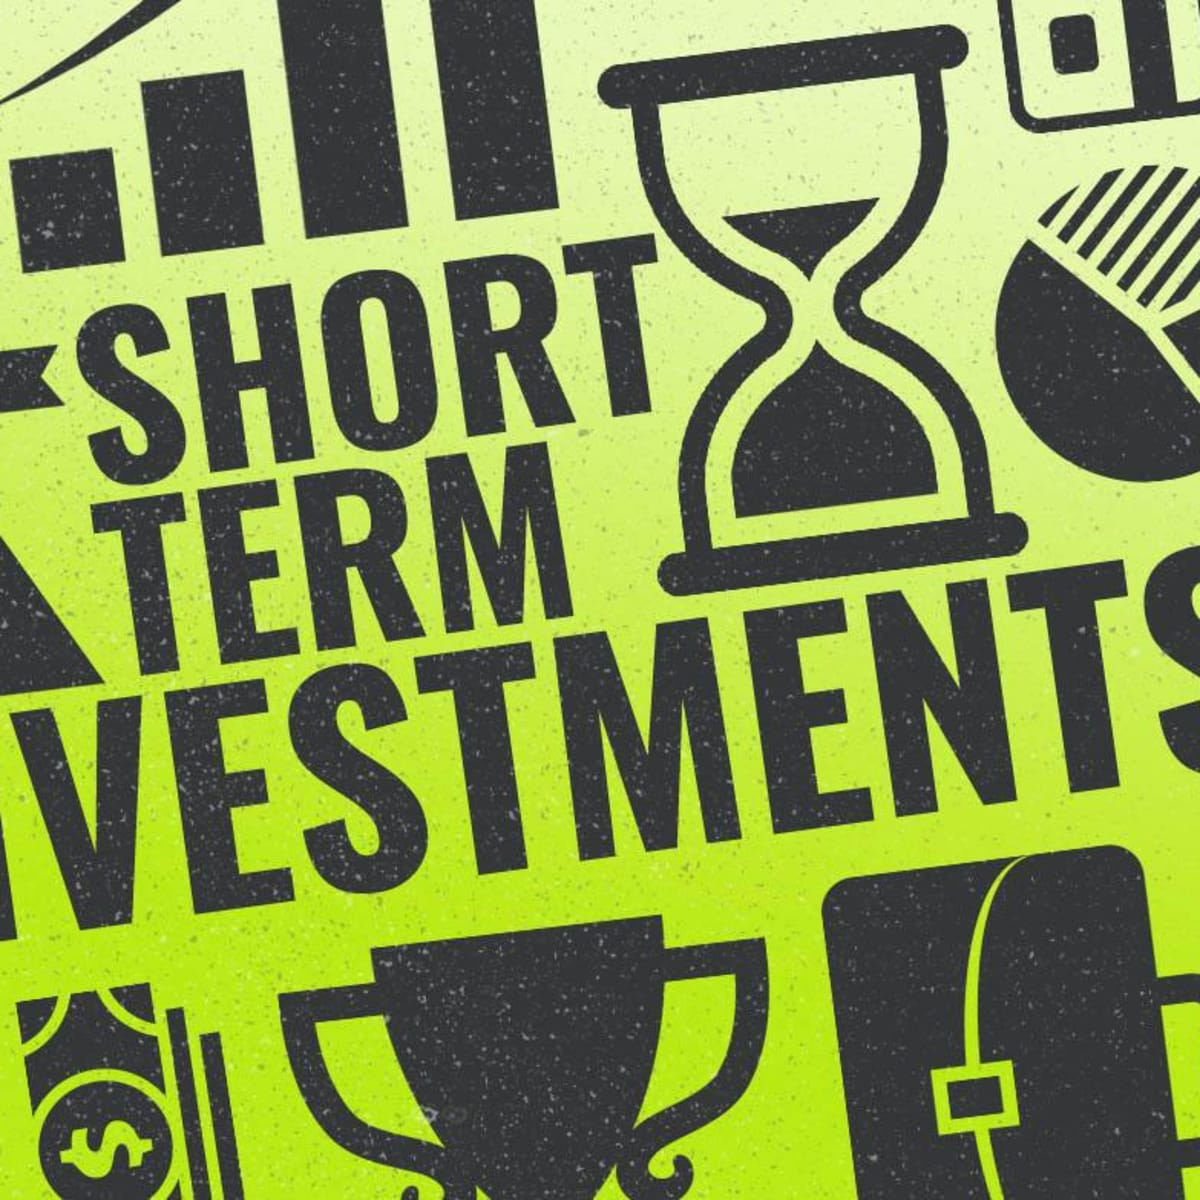 Best short term investments account rule 17f-7 of the us investment company act